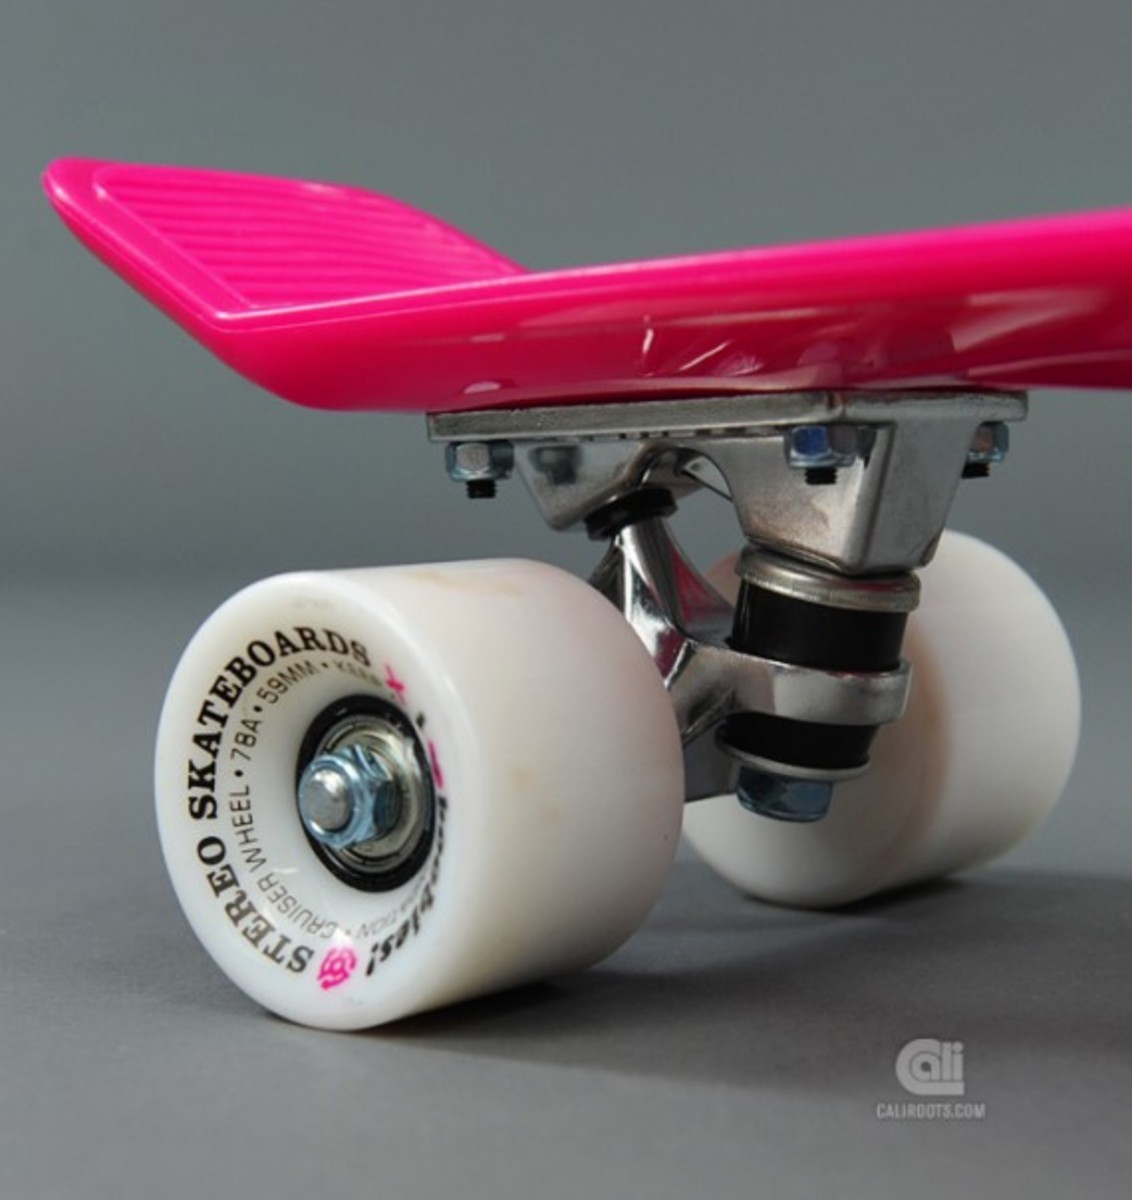 stereo-keep-a-breast-vinyl-cruiser-05